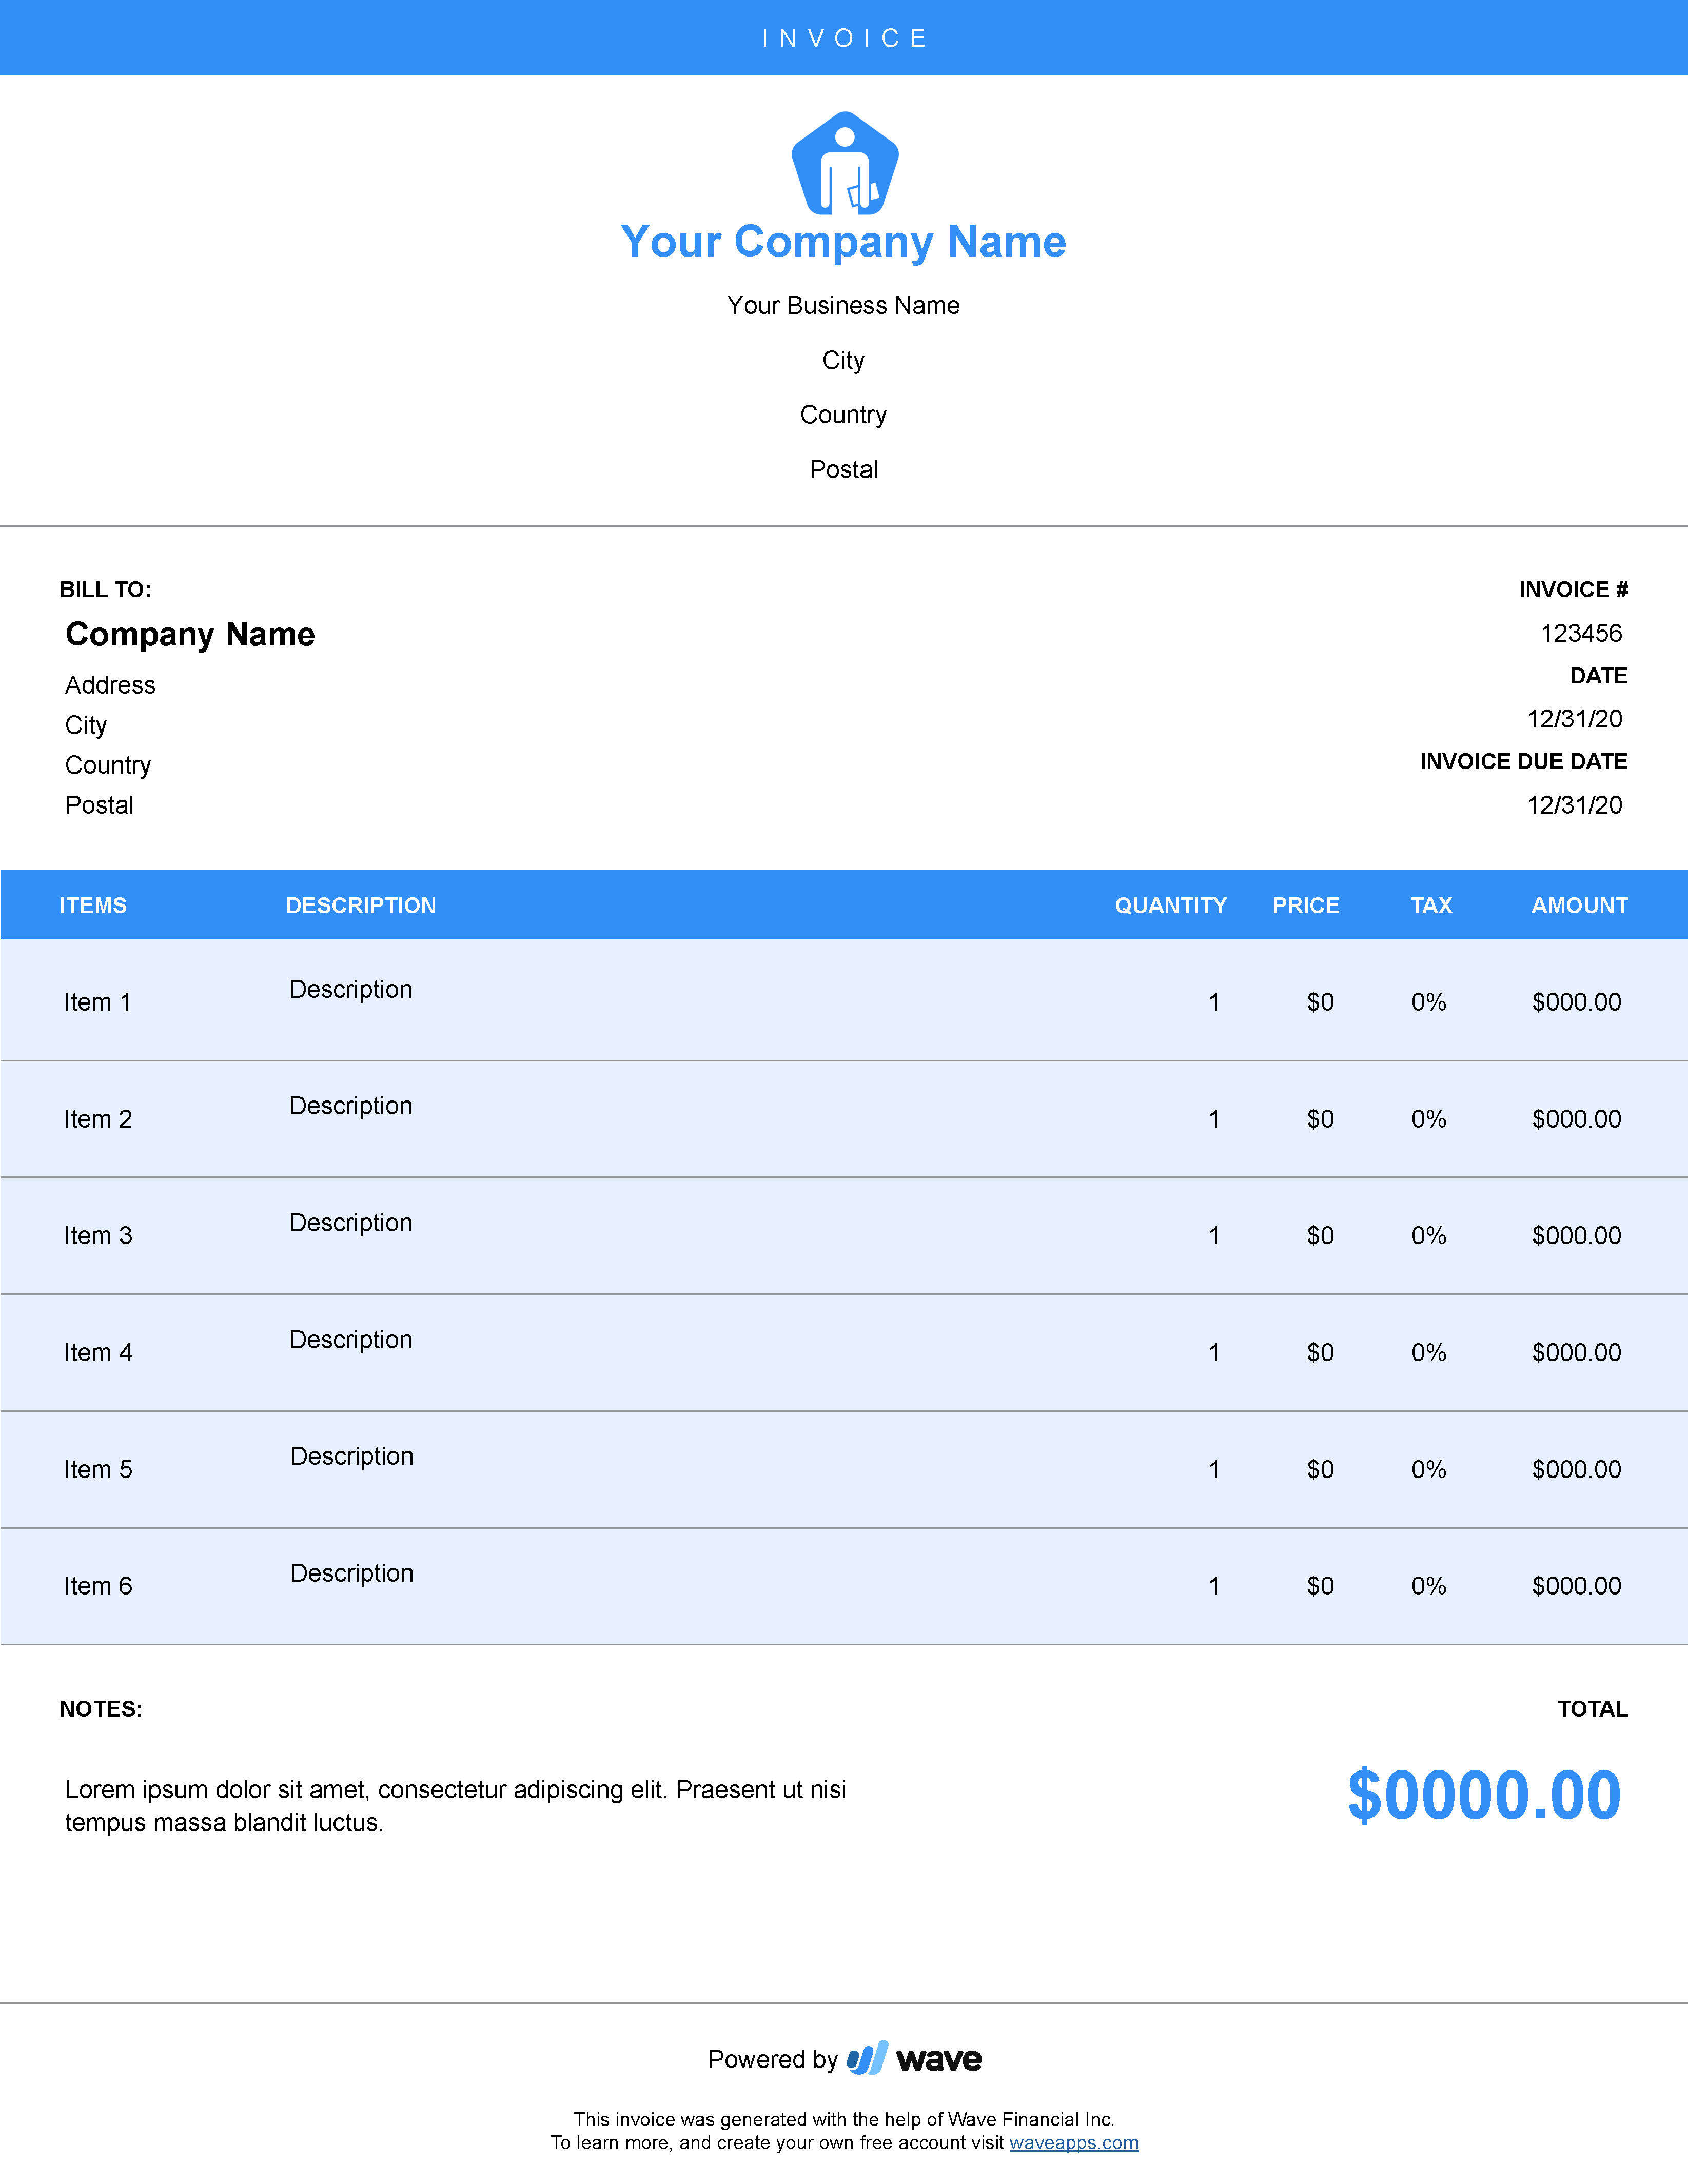 Invoice Template Create Send Invoices Using Free Invoicing Templates